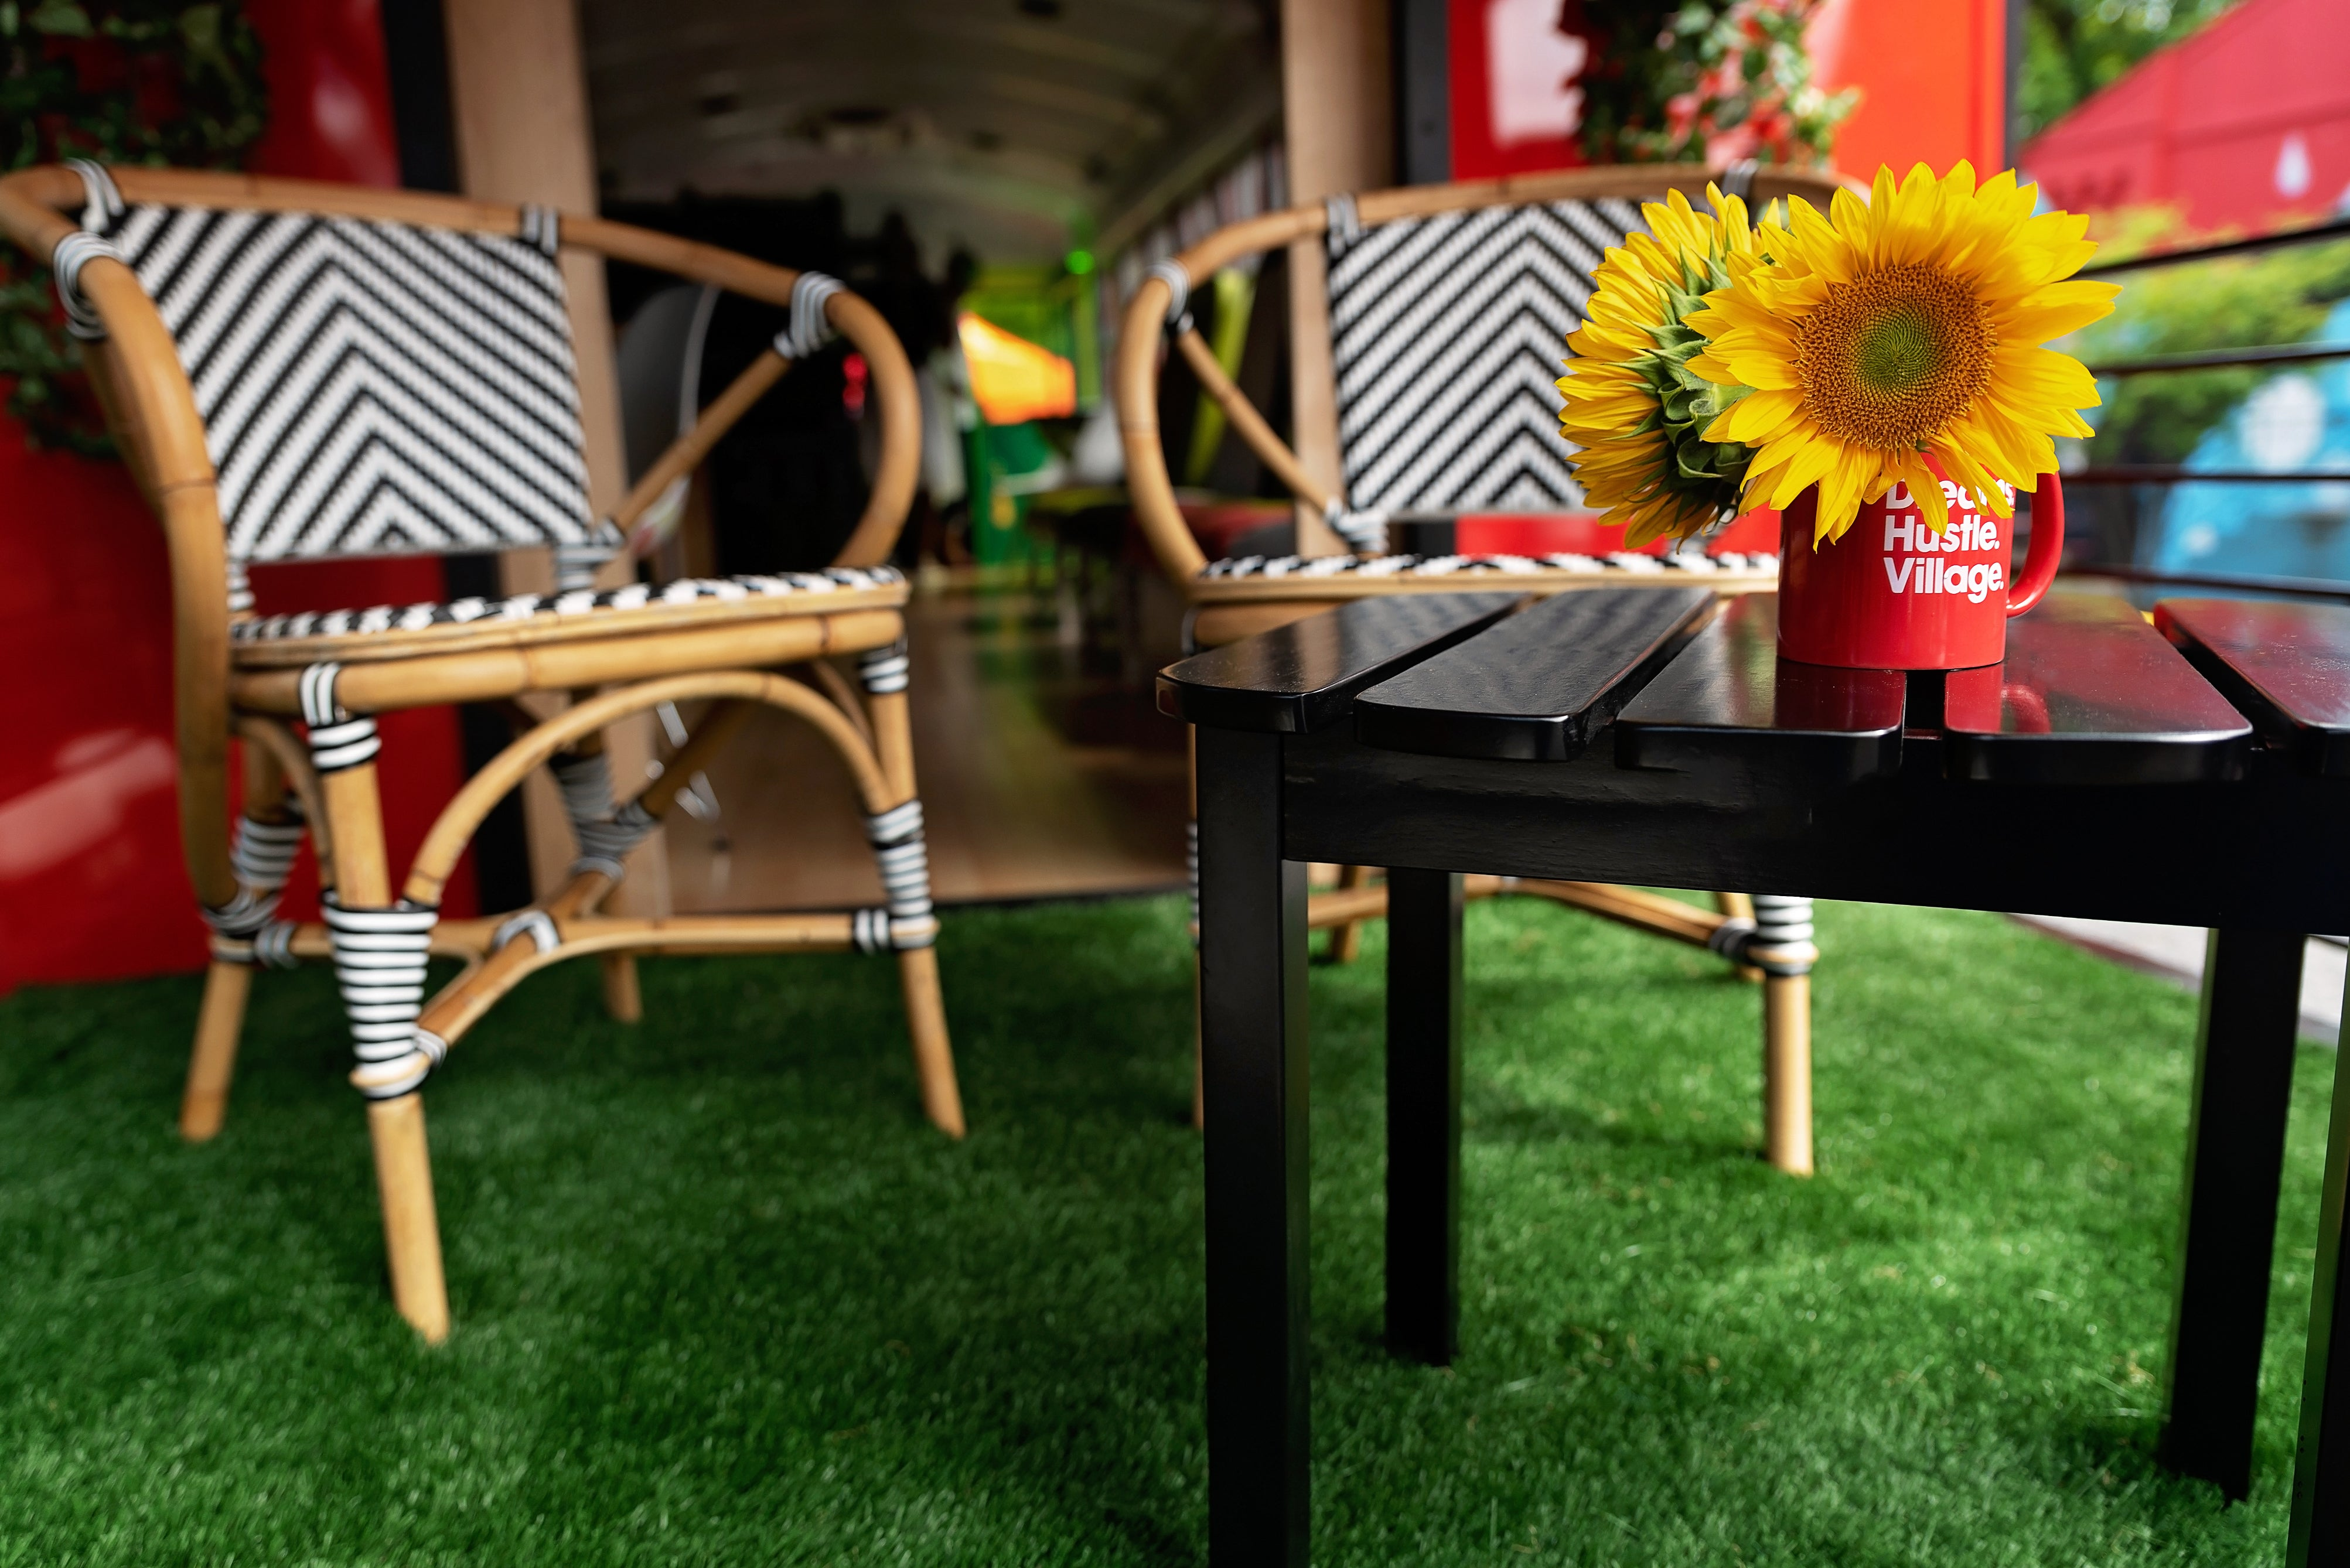 Kiyonda Powell upcycled a bus and creating a green patio on the back with chairs and flowers